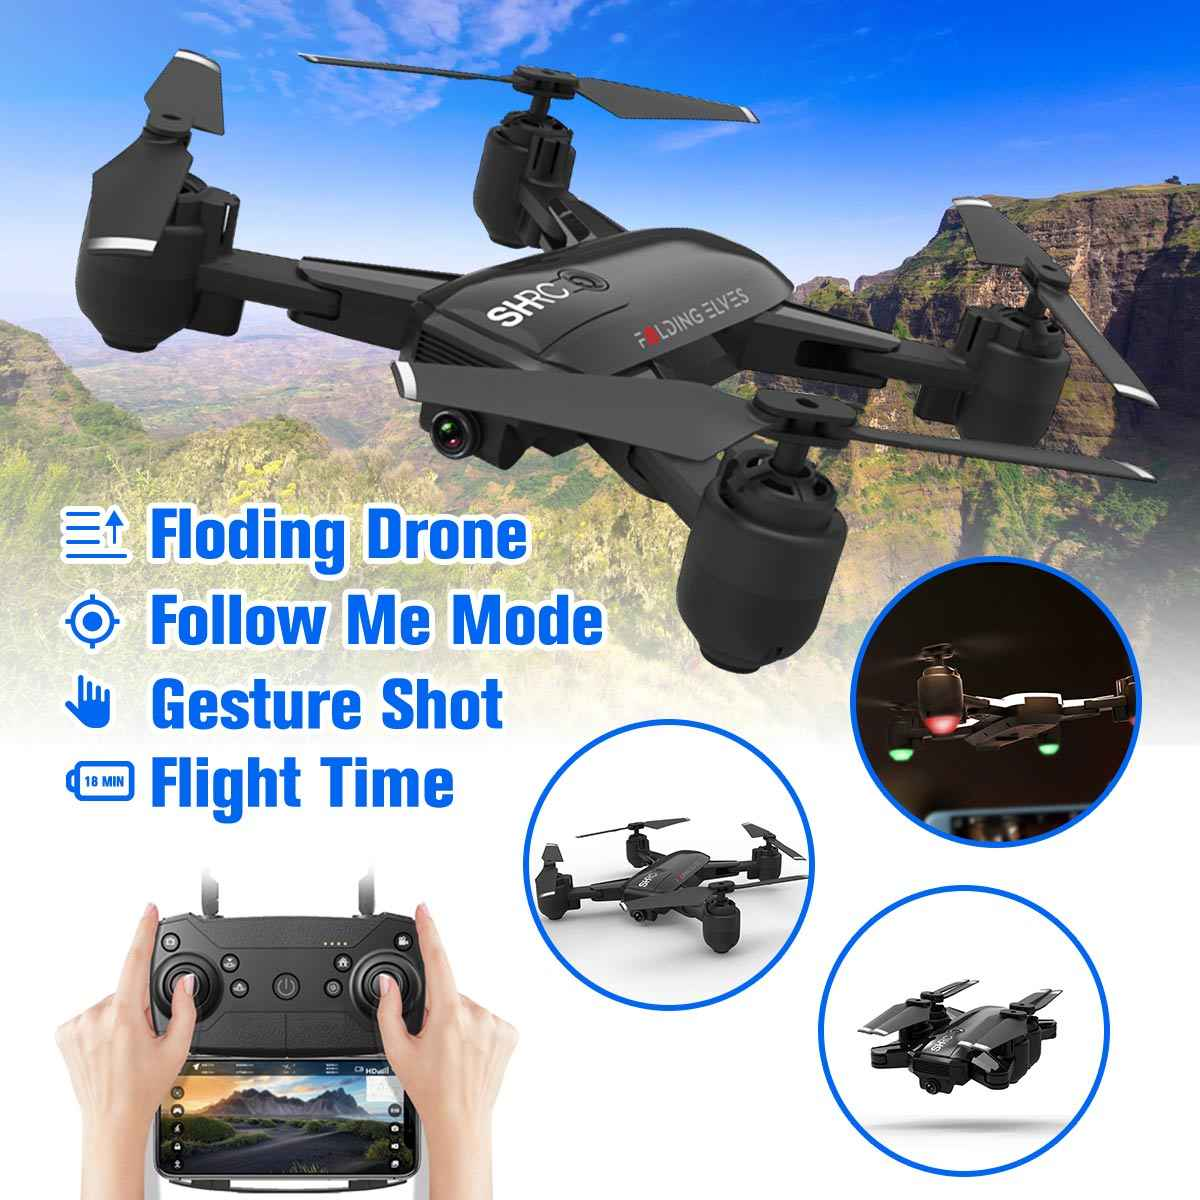 Drone X Pro 2.4g Selfi Wifi Fpv 1080p Camera Foldable Rc Quadcopter 4*batteries Cameras & Photo Toys & Hobbies